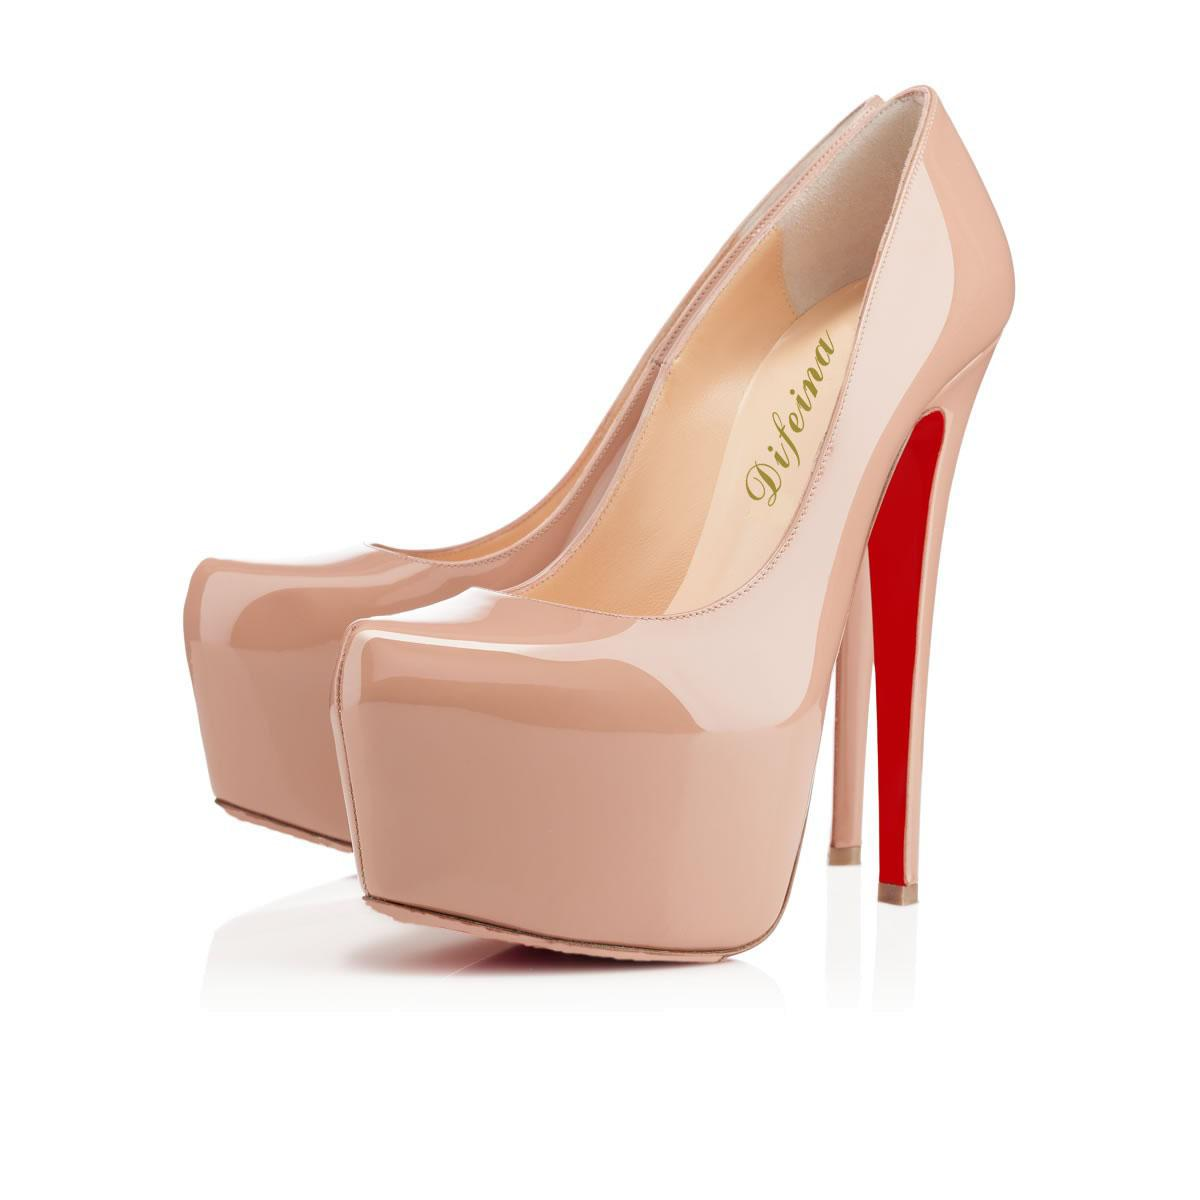 New Arrival Womens Nude High Heel Shoes Leather High Heels